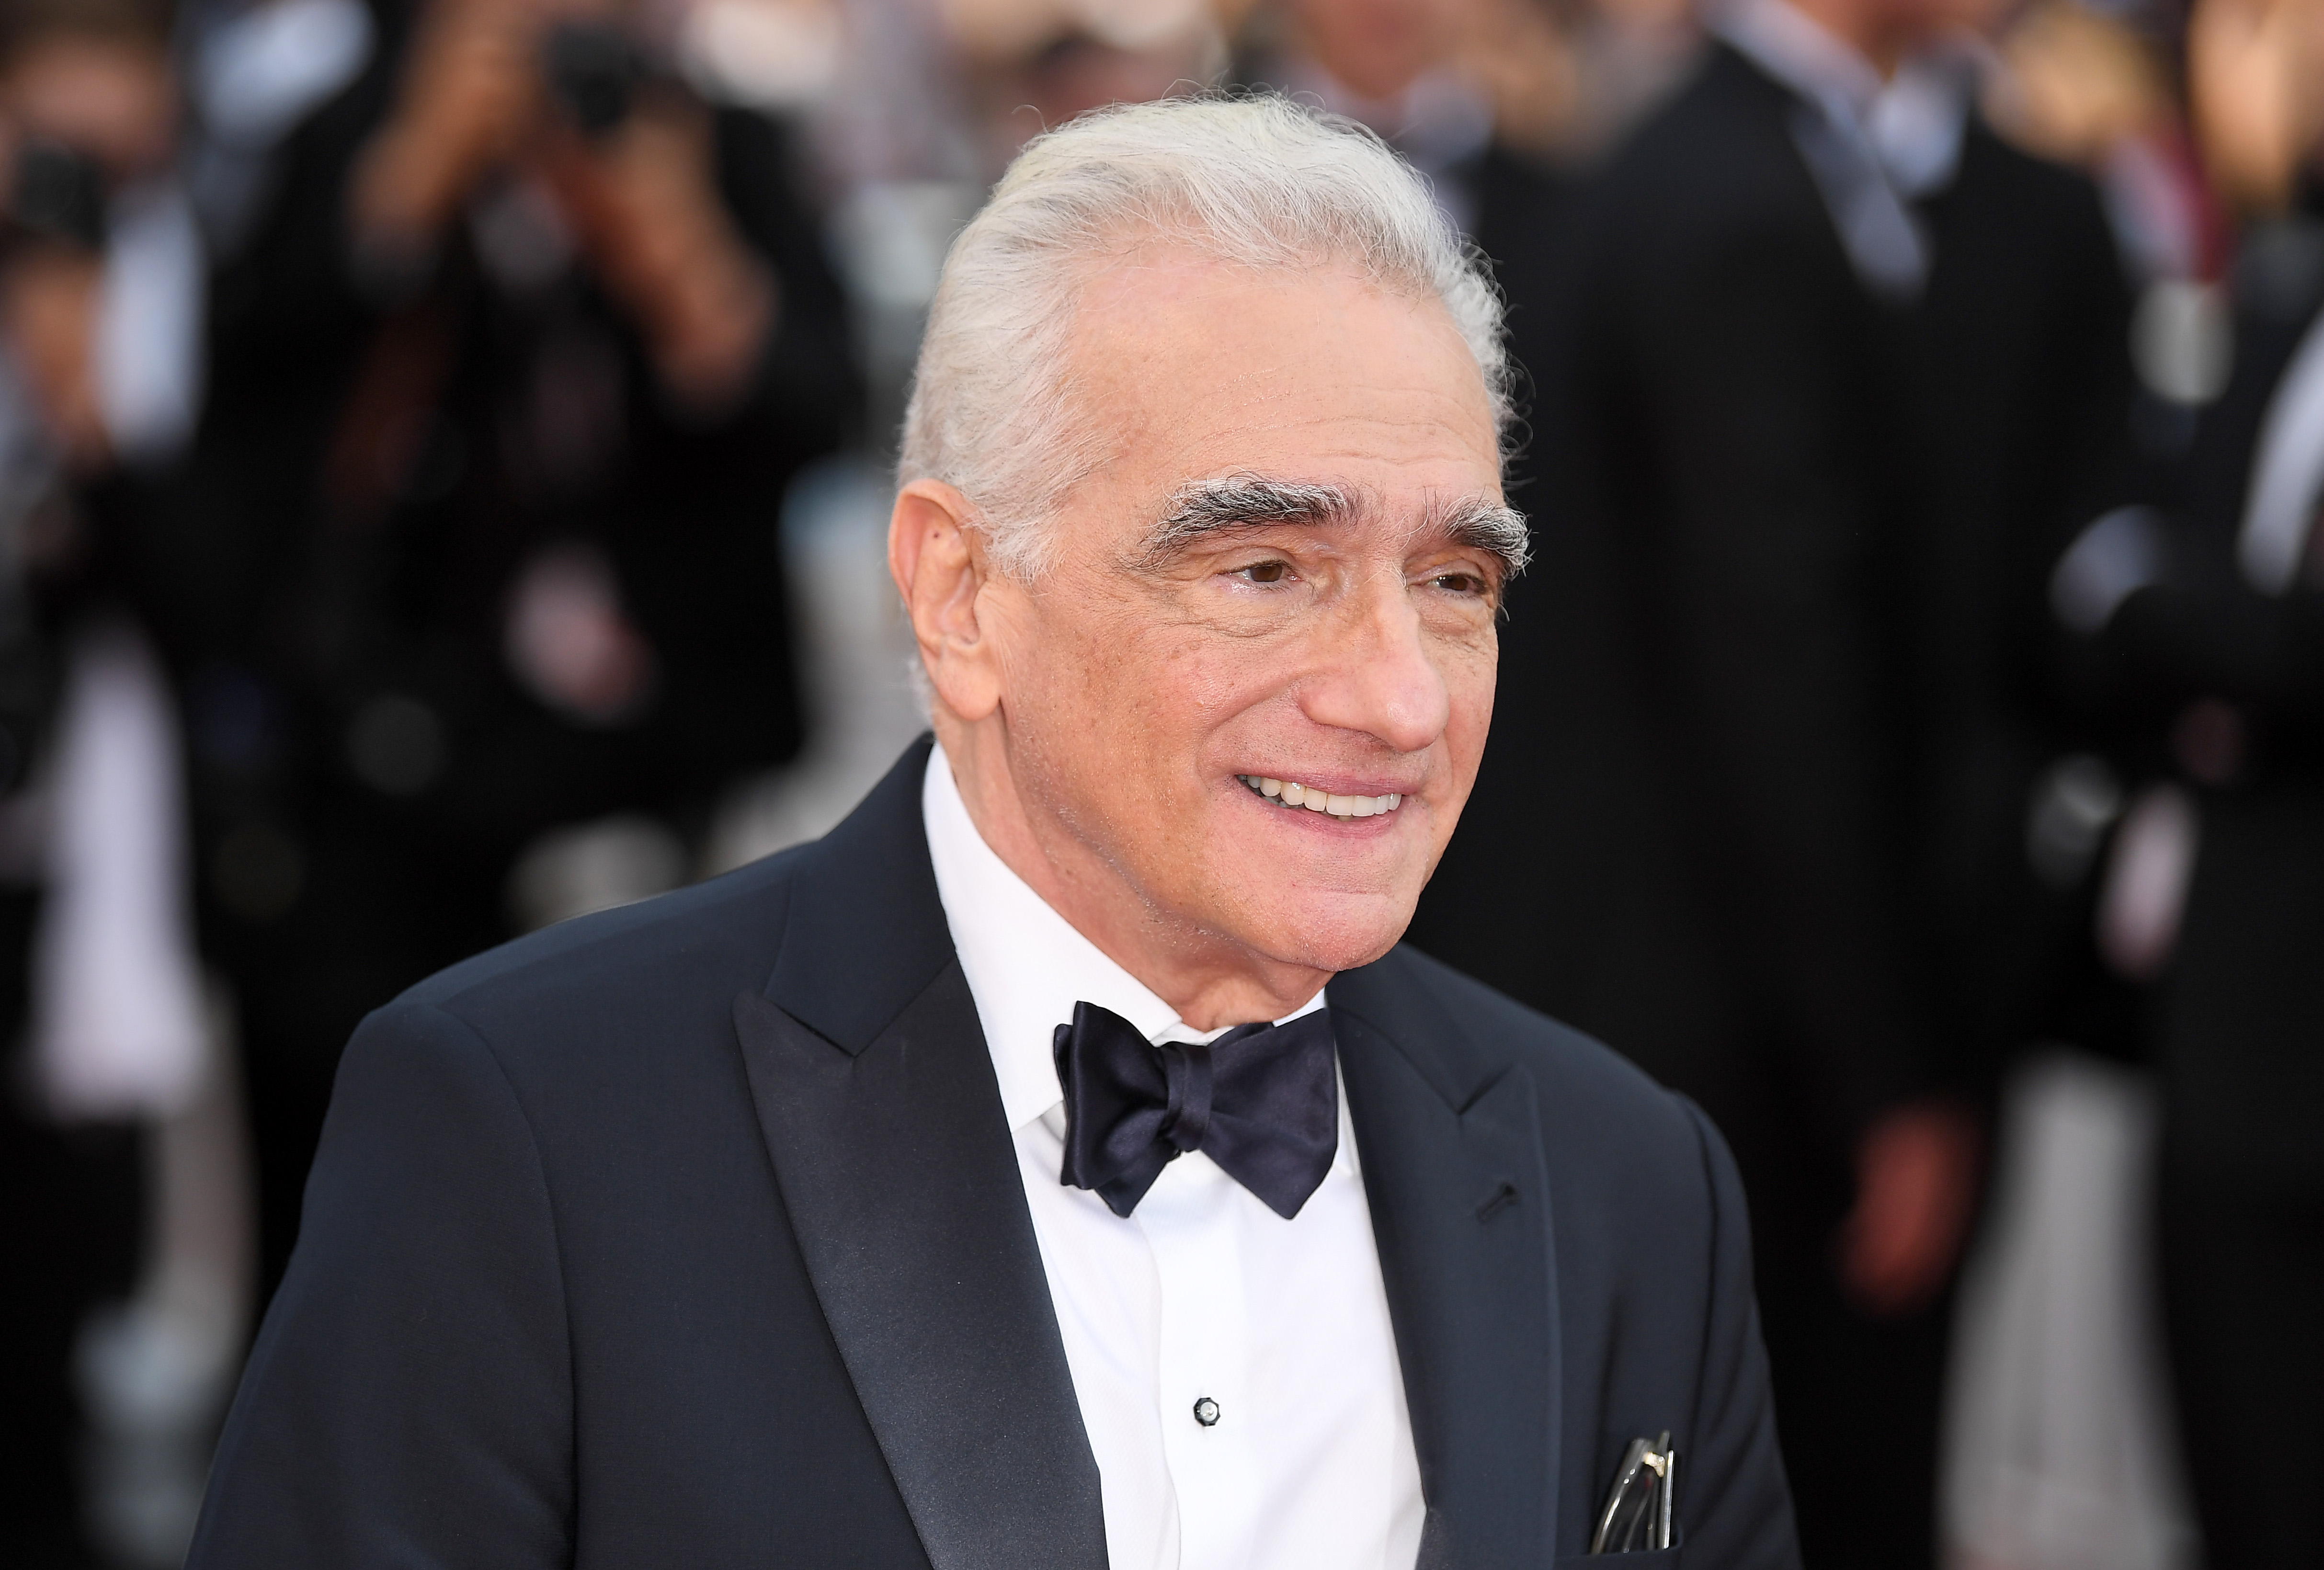 Martin Scorsese: 'The Irishman' Has Almost 300 Scenes, Which Made It Challenging to Storyboard